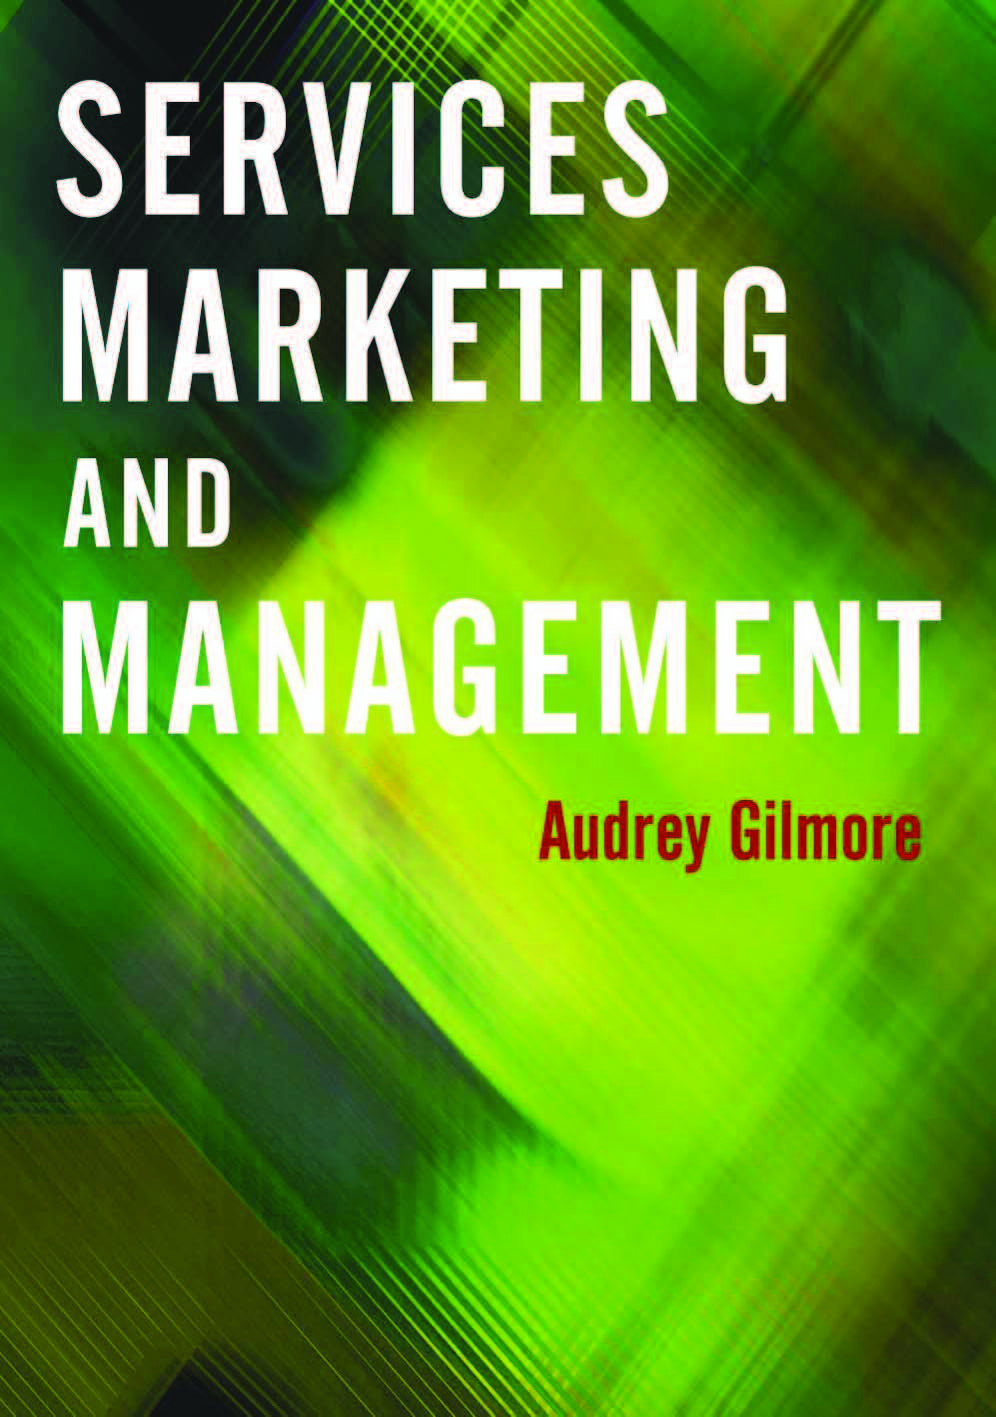 Download Ebook Services Marketing and Management by Audrey Gilmore Pdf